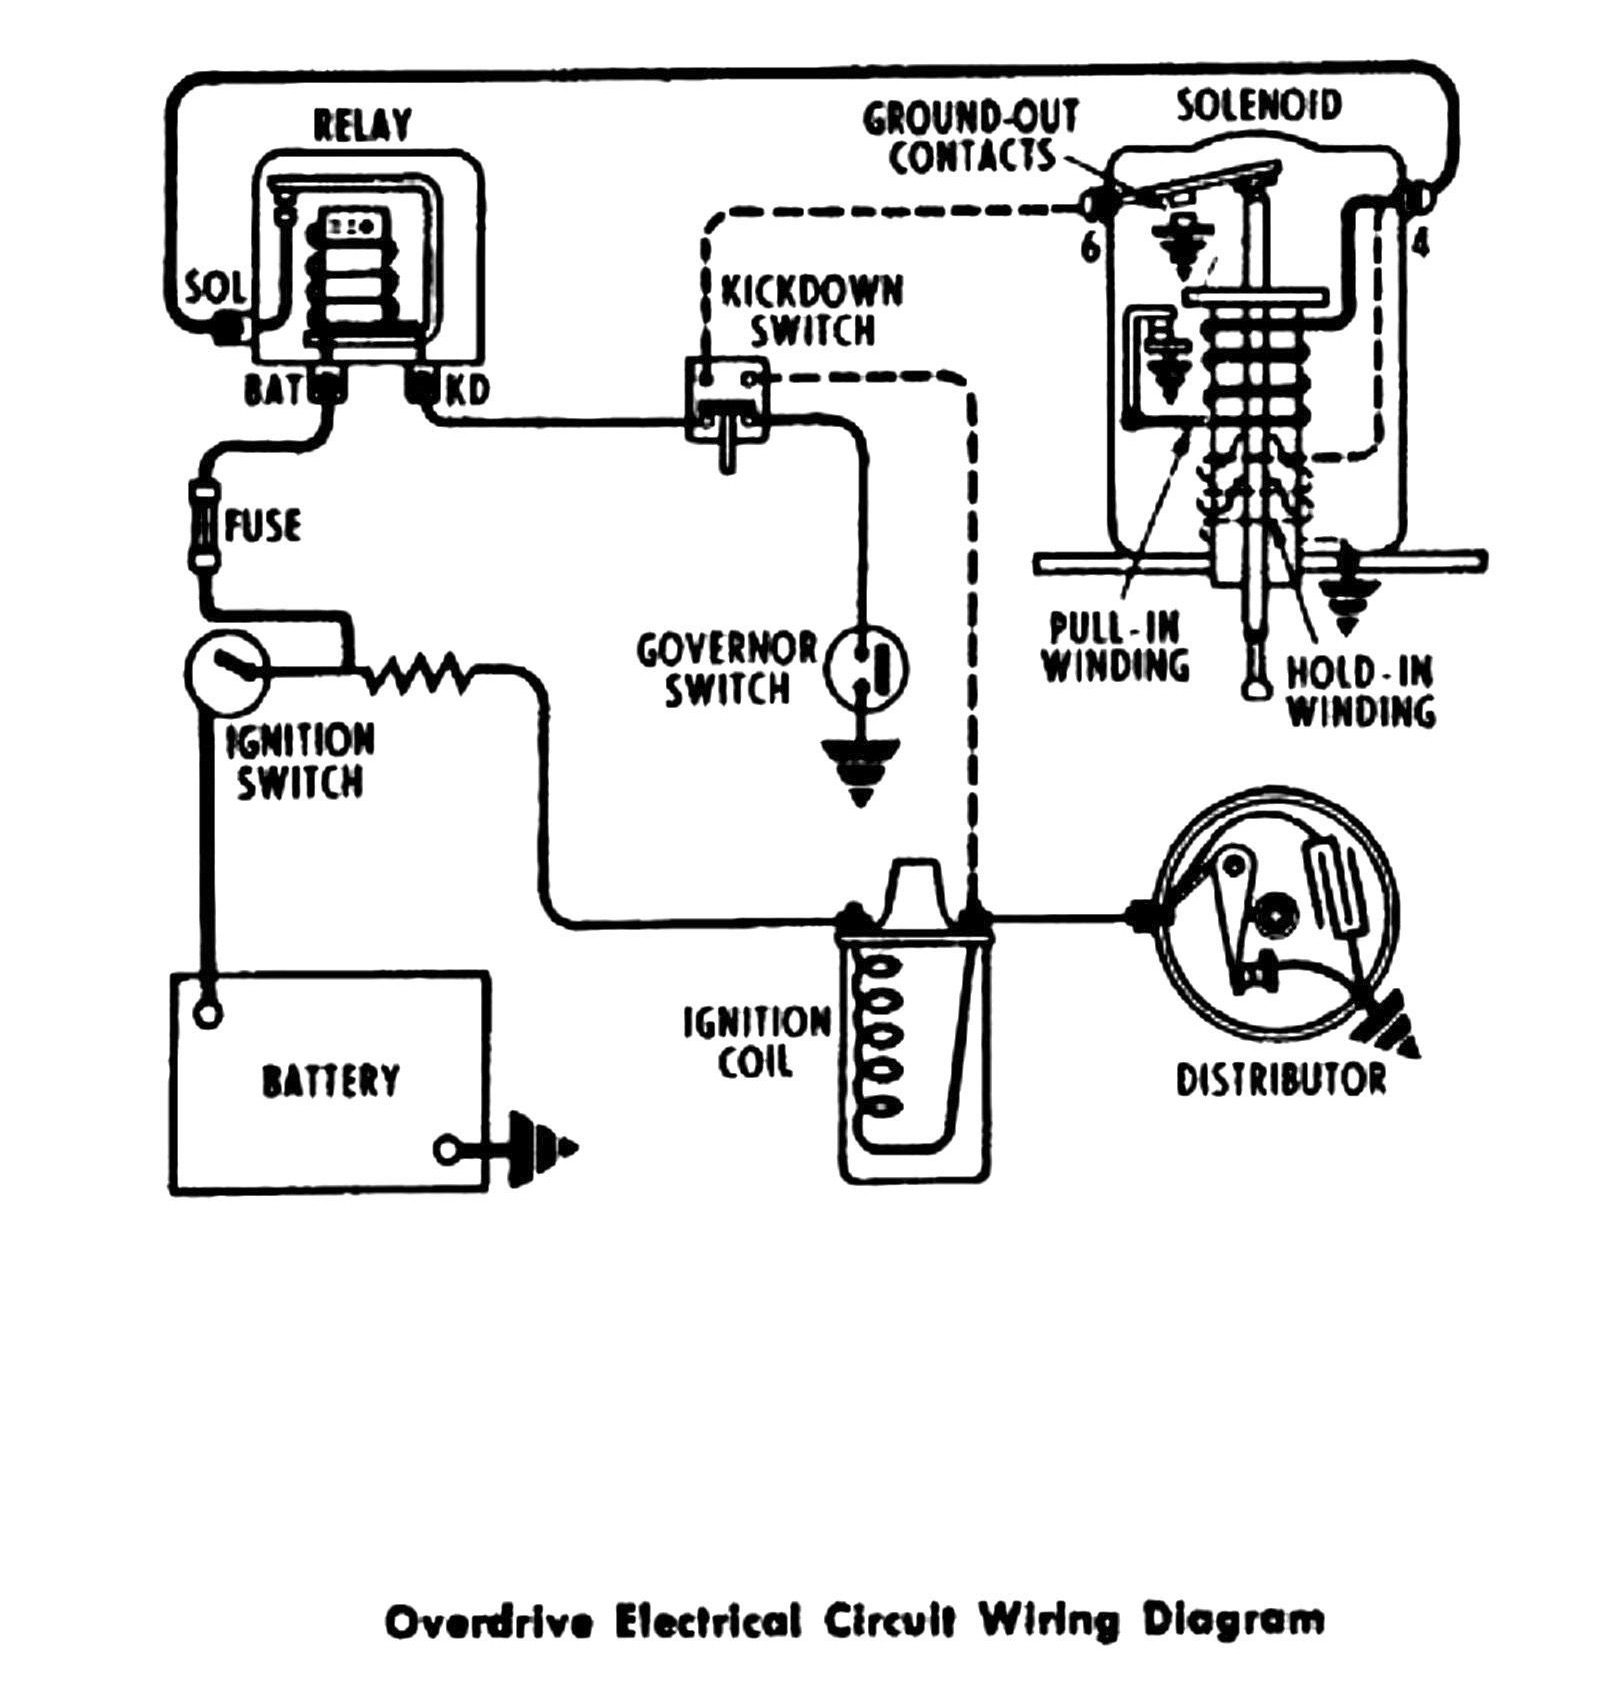 1955 Chevrolet Overdrive wiring